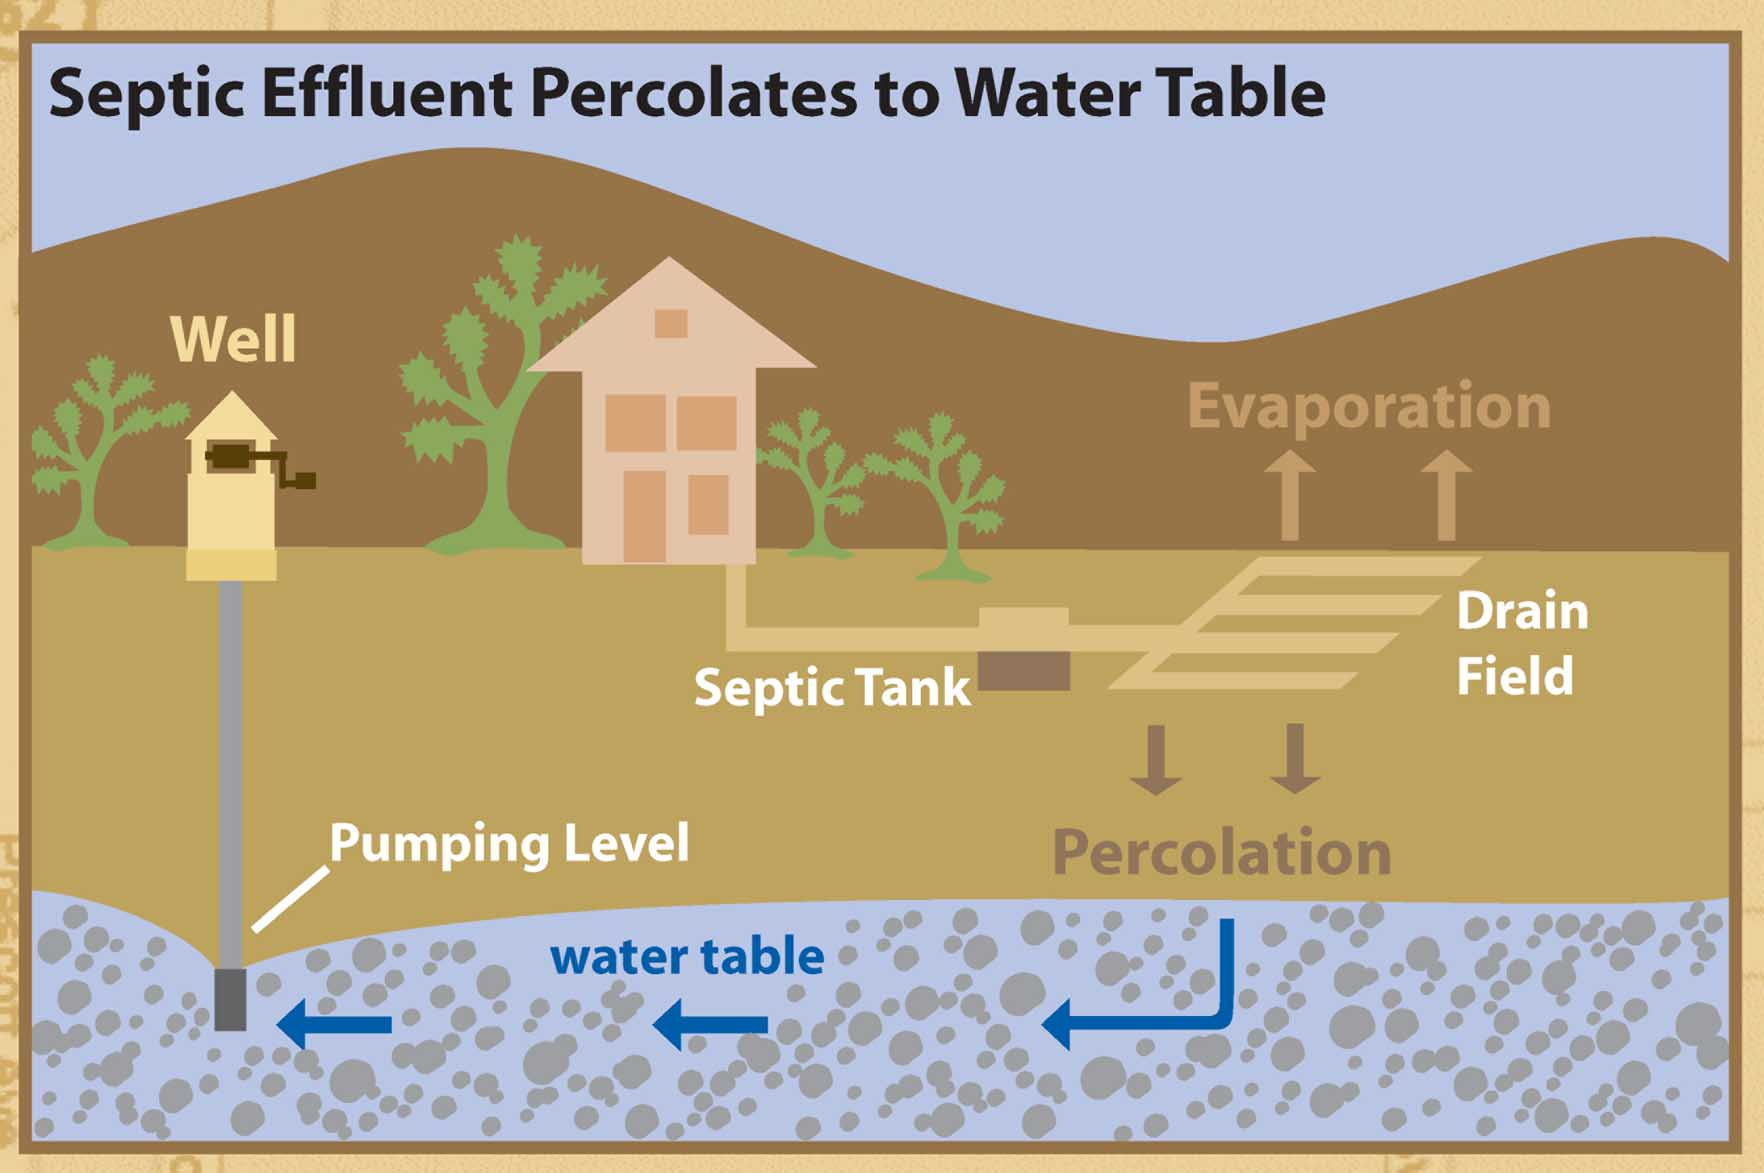 Septic system graphic.jpg